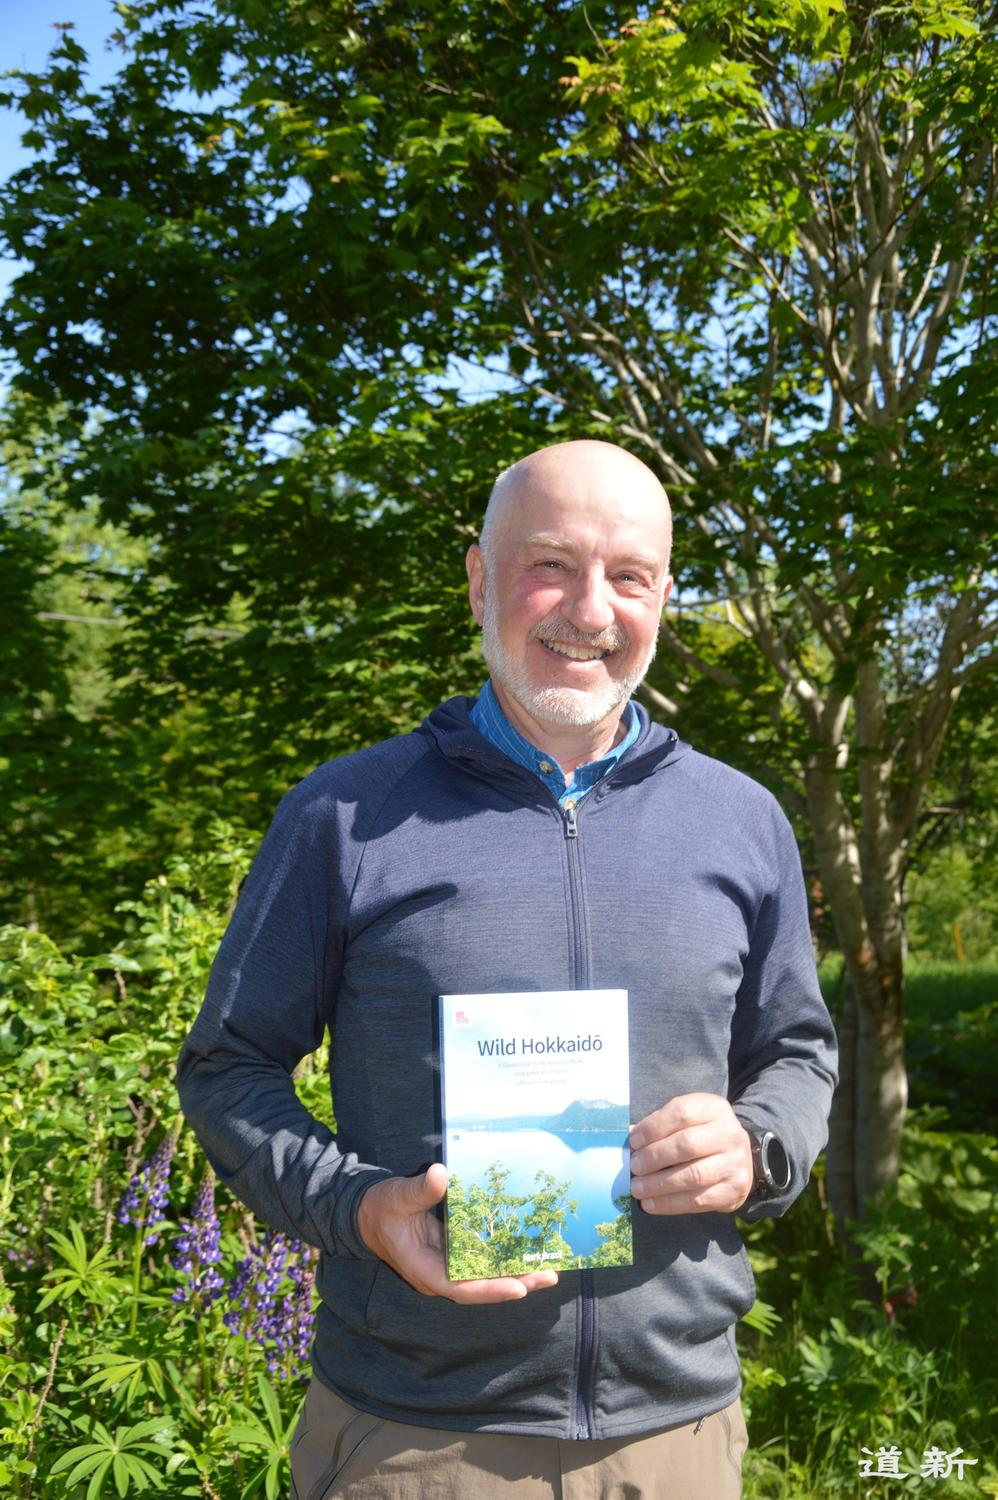 Photo:UK ornithologist in Teshikaga publishes guidebook for foreigners introducing the nature of eastern Hokkaido in English